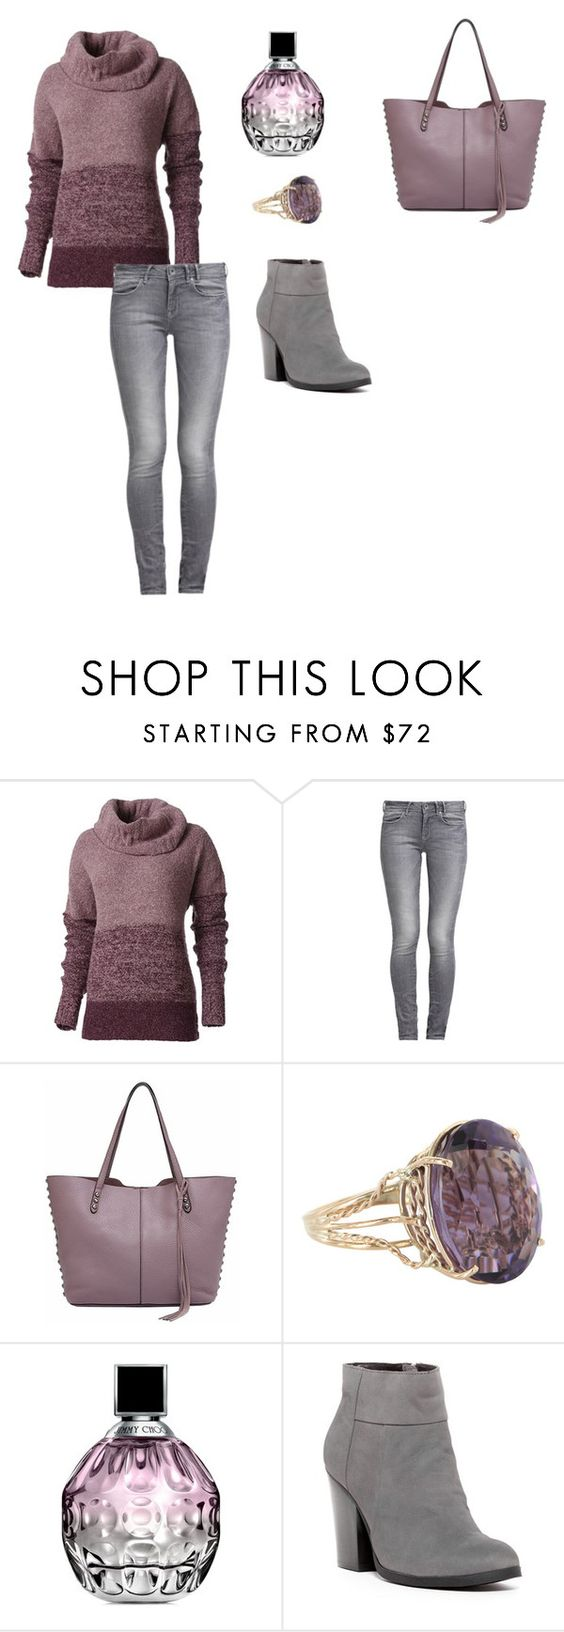 """""""Foreigner: Say You Will..."""" by lalynany ❤ liked on Polyvore featuring Royal Robbins, GUESS, Rebecca Minkoff, Vintage, Jimmy Choo and Kenneth Cole Reaction"""